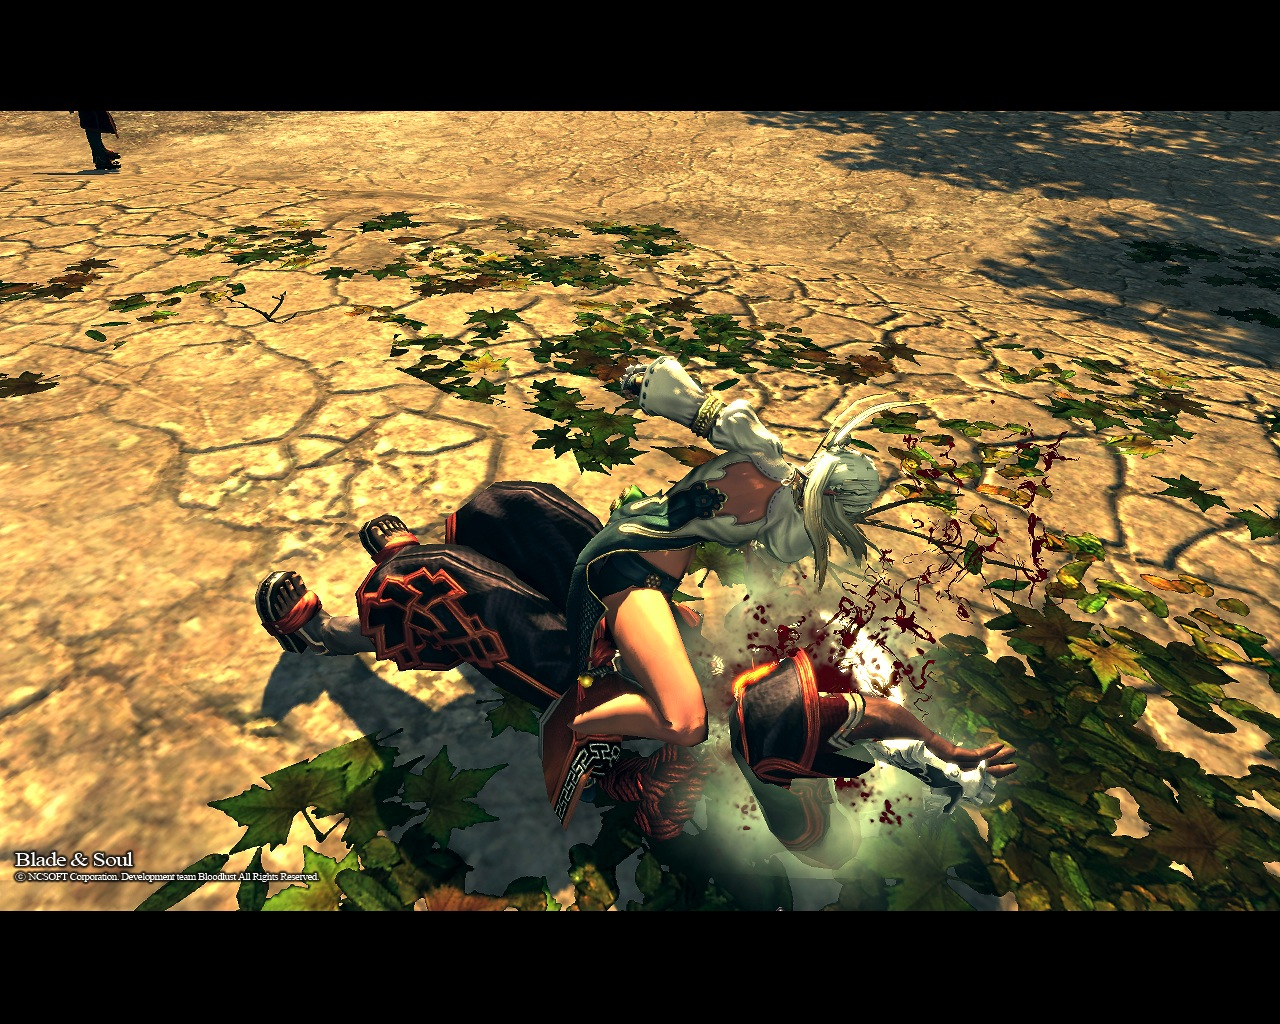 Blade and Soul ed 09